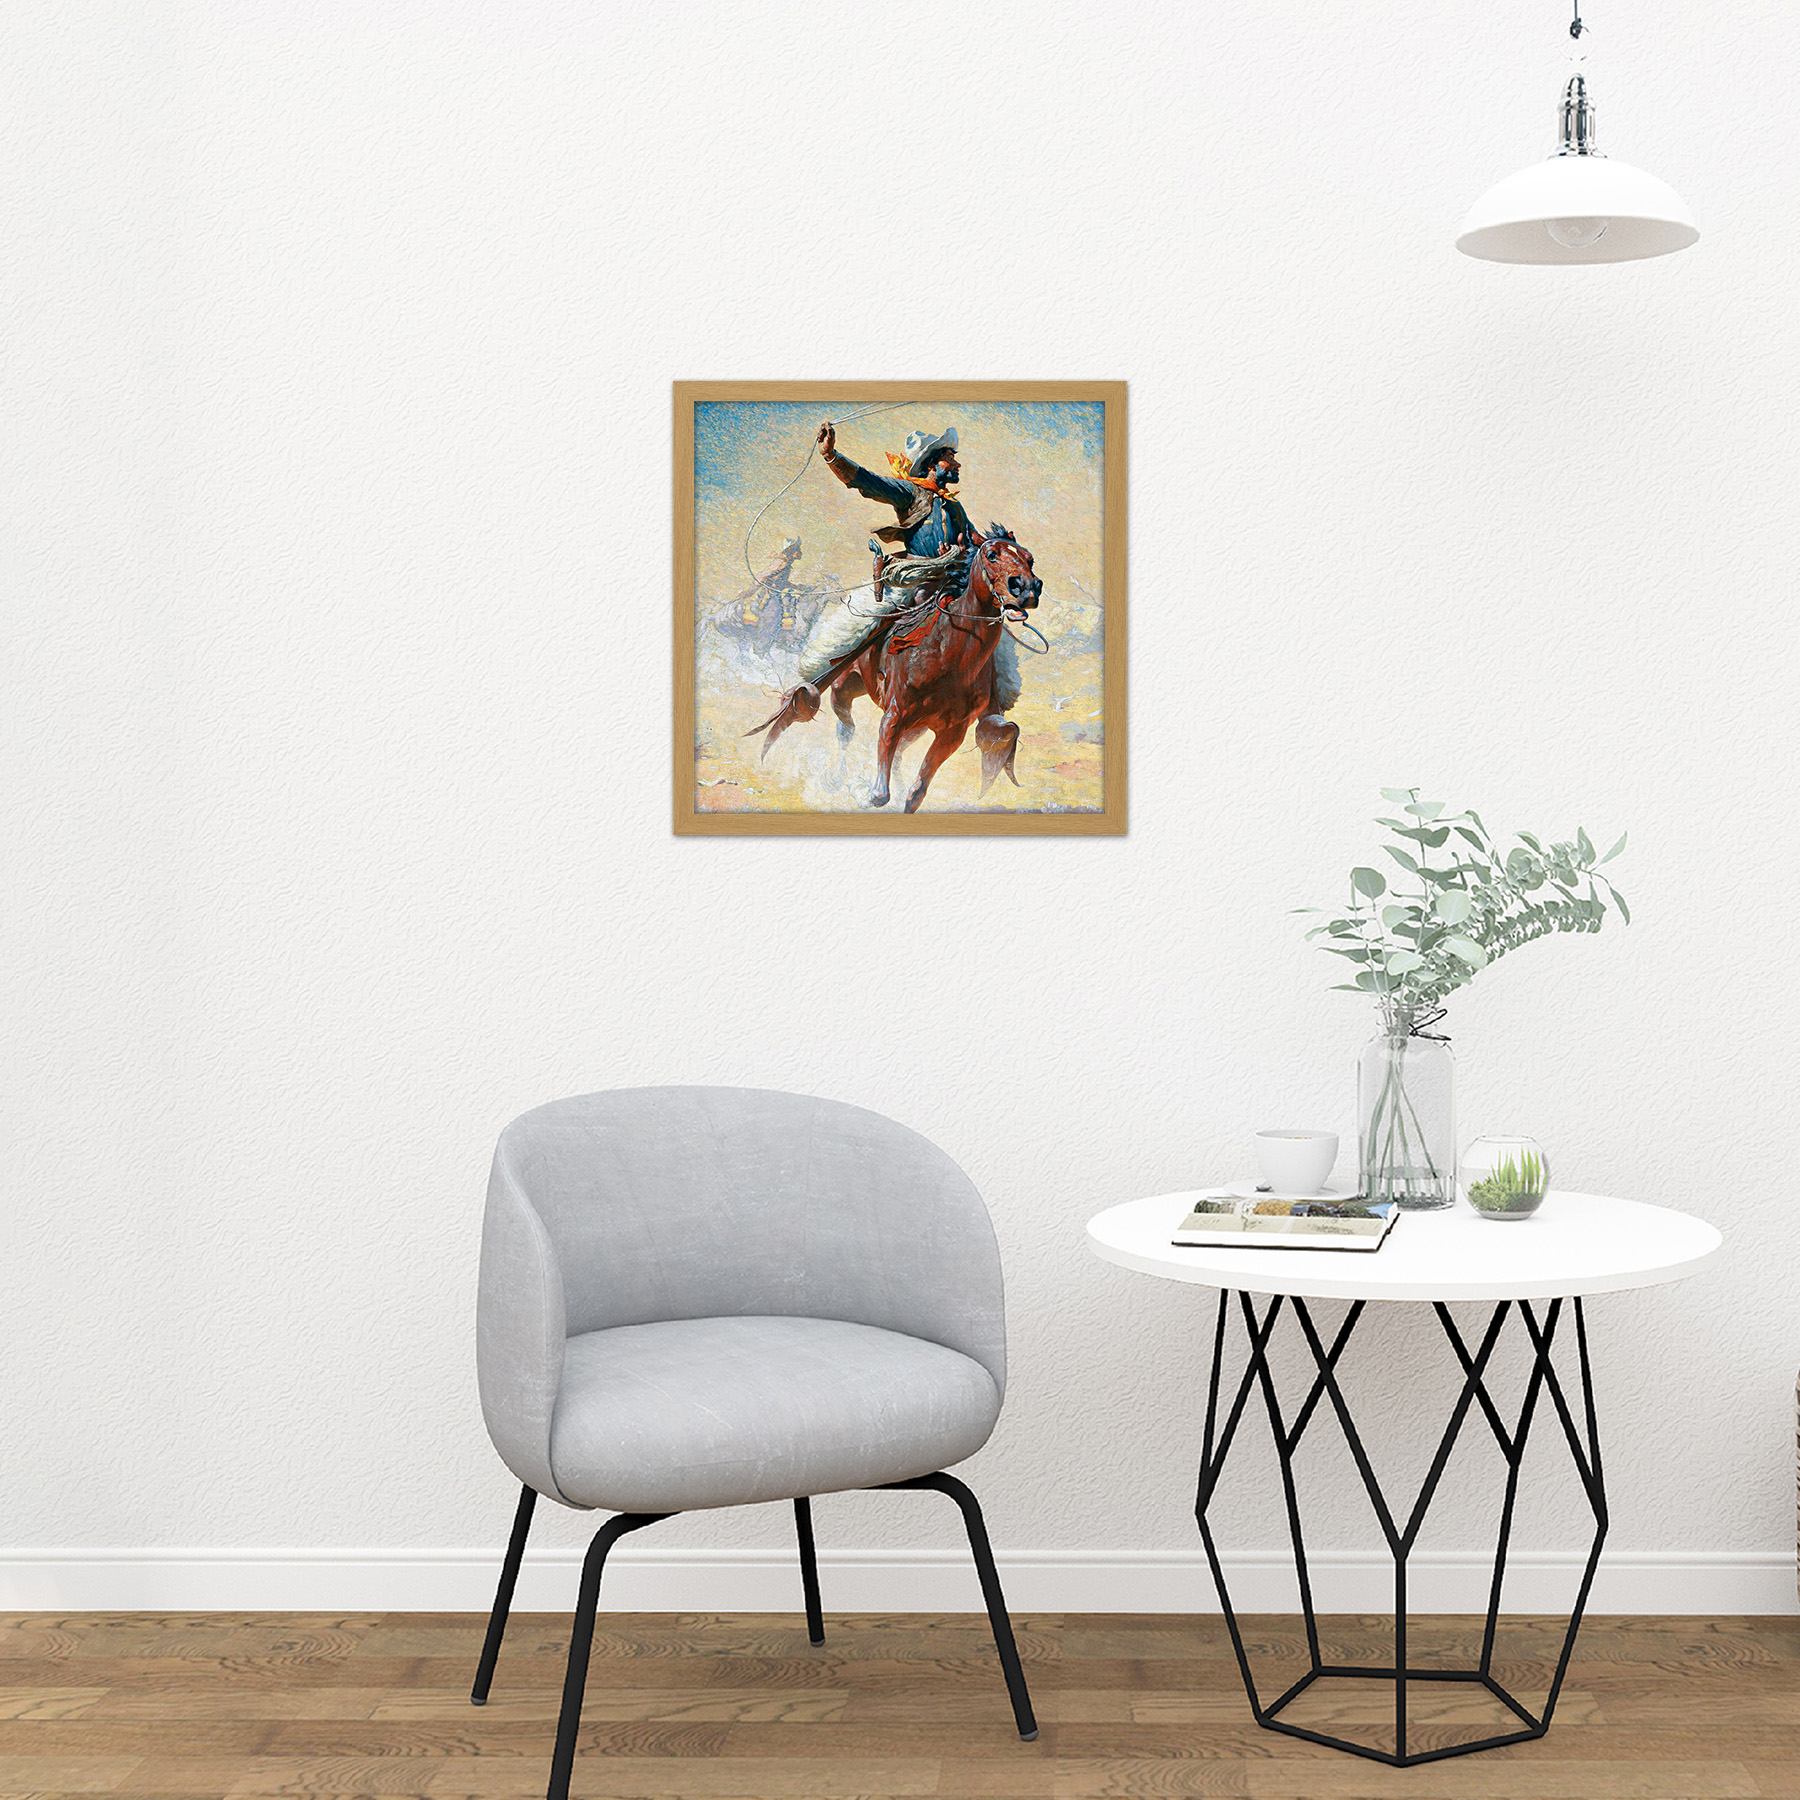 Leigh-The-Roping-Cowboy-Lasso-Horse-Painting-Square-Framed-Wall-Art-16X16-In thumbnail 11